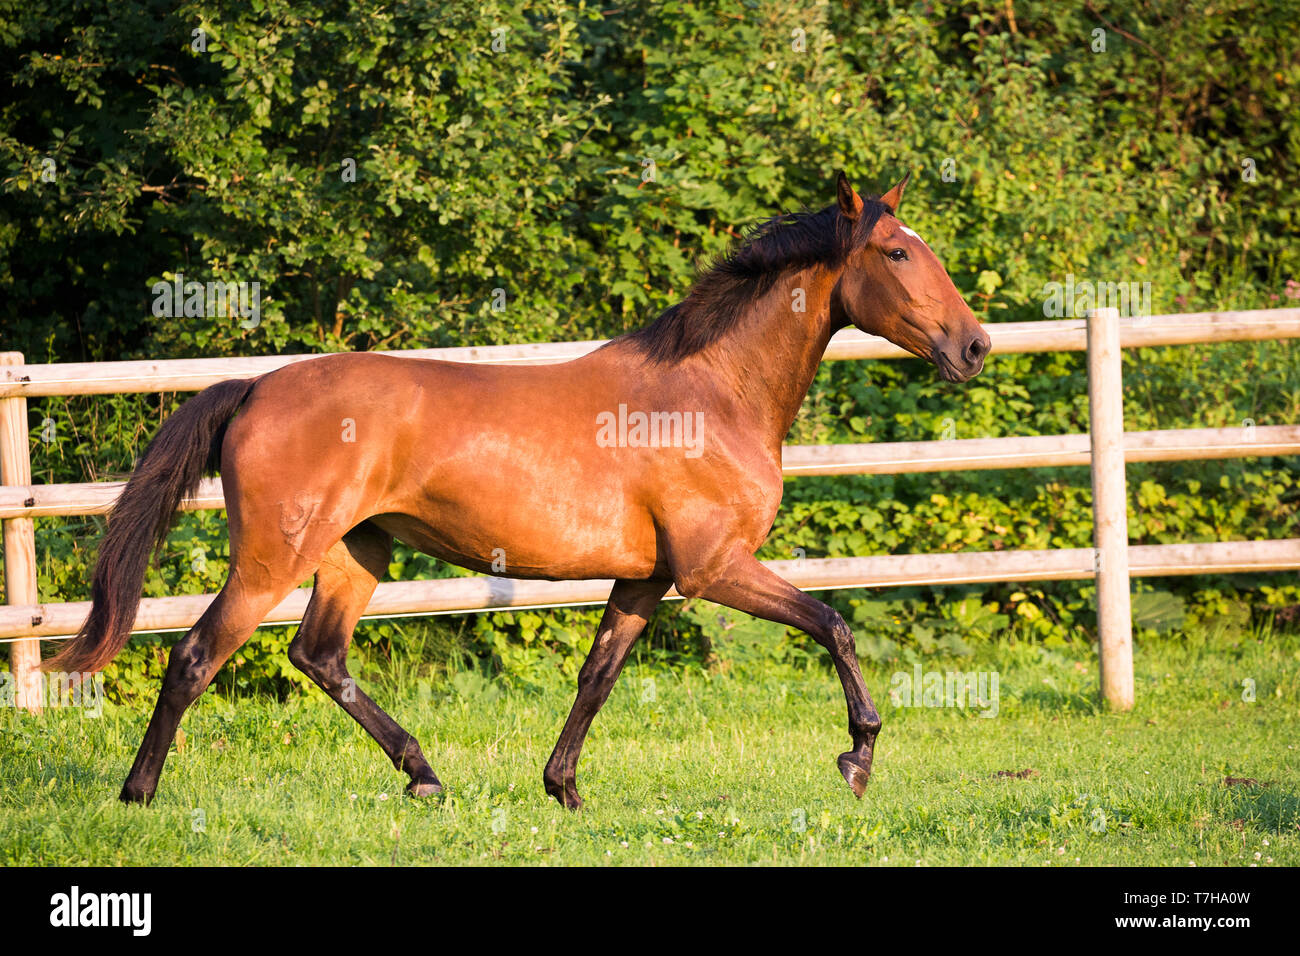 Lusitano. Juvenile bay mare trotting on a pasture. Germany - Stock Image